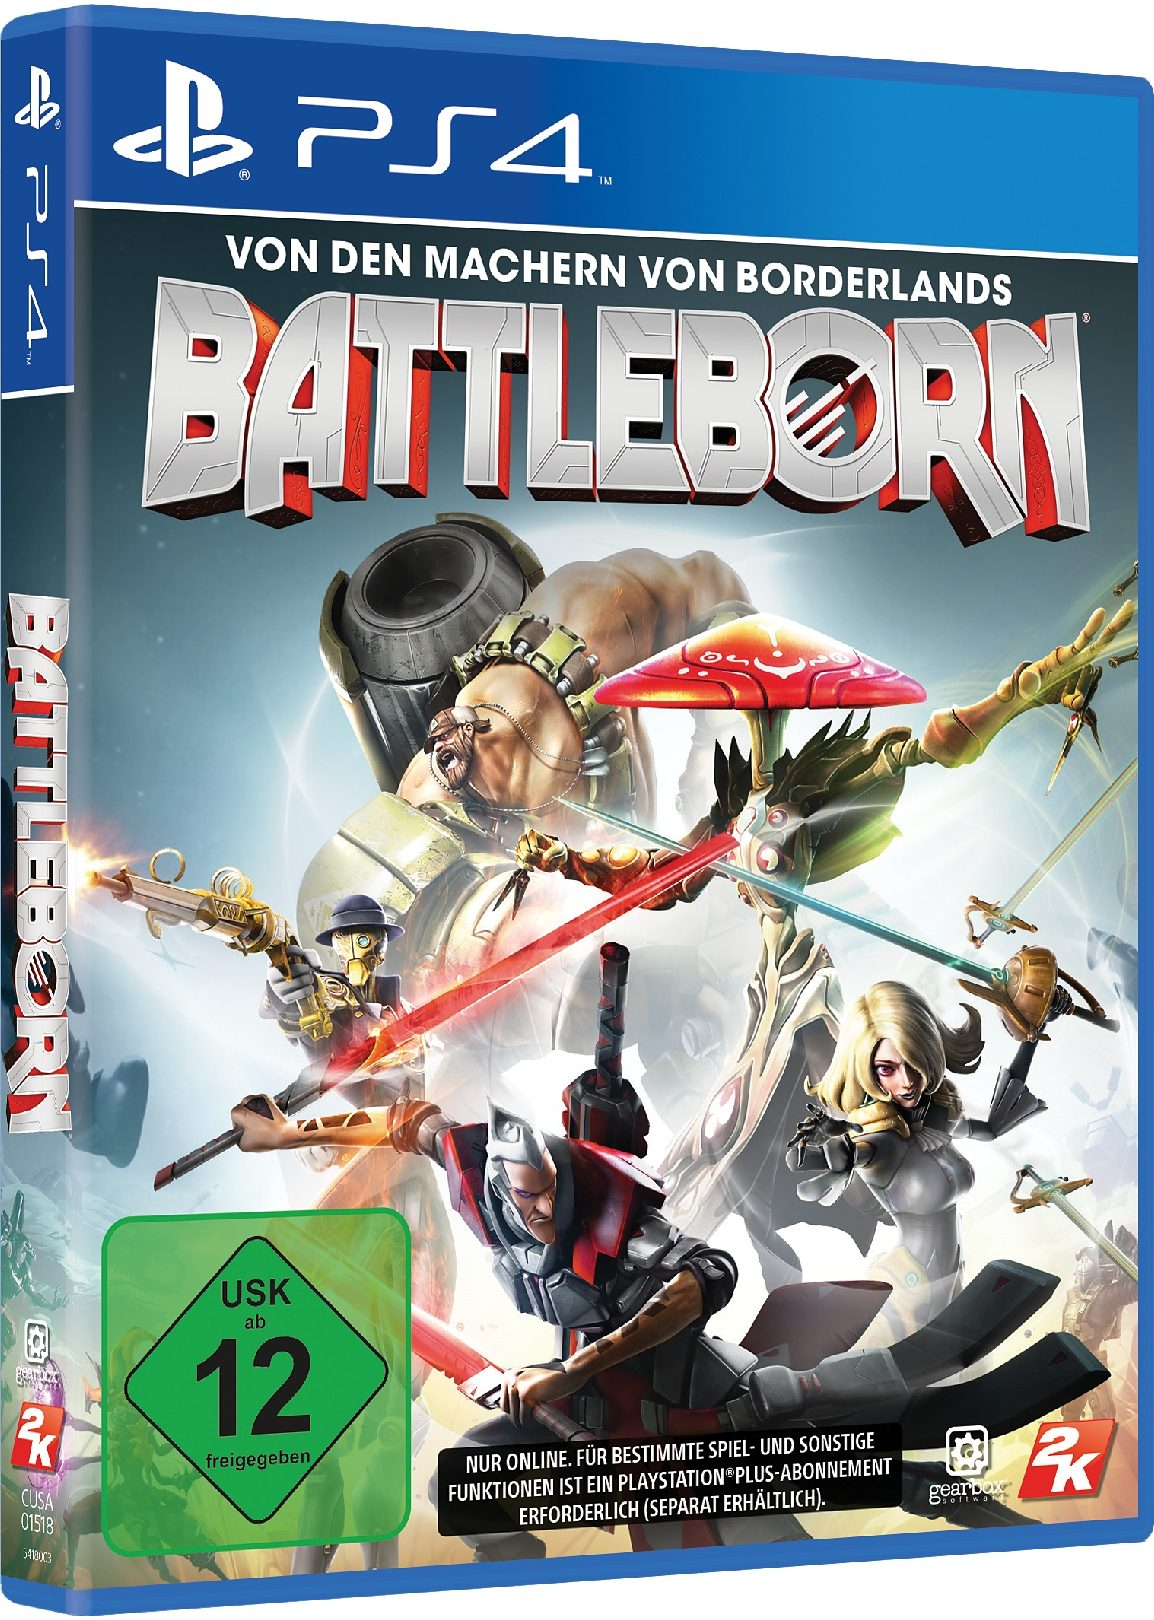 Take 2 Battleborn »(PS4)«